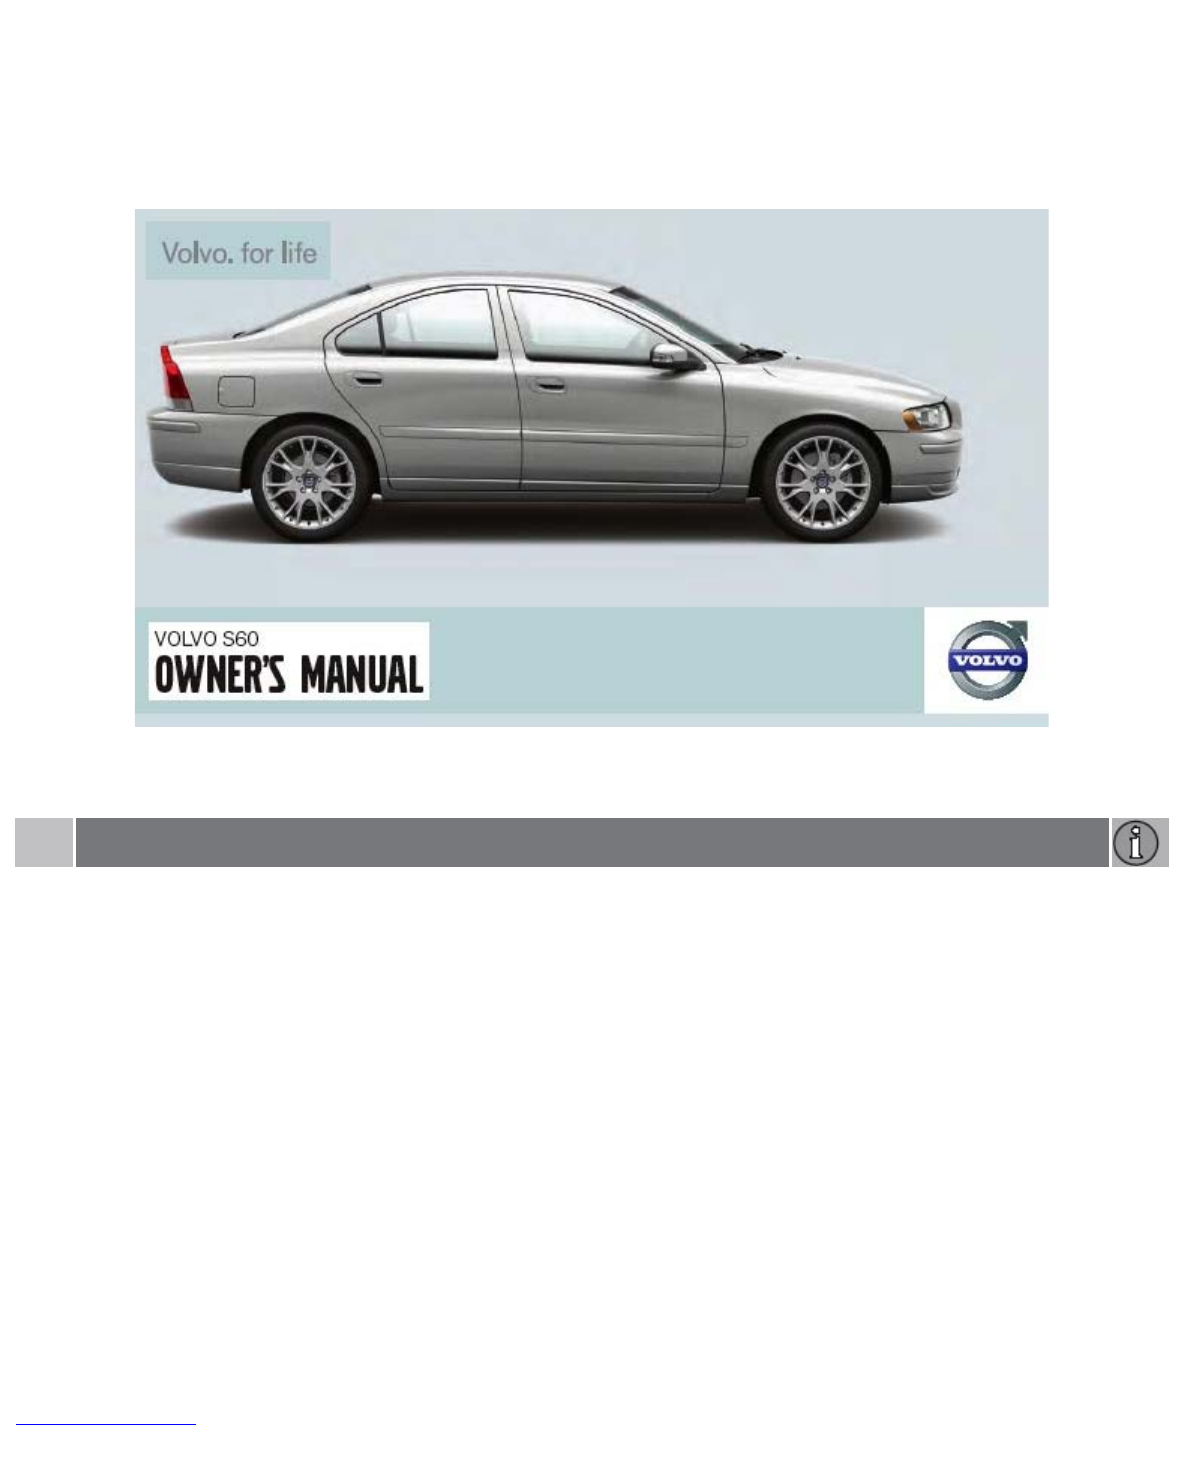 2008 volvo s60 owners manual pdf rh manuals co 2008 volvo s60 owners manual pdf 2006 volvo s60 owners manual pdf